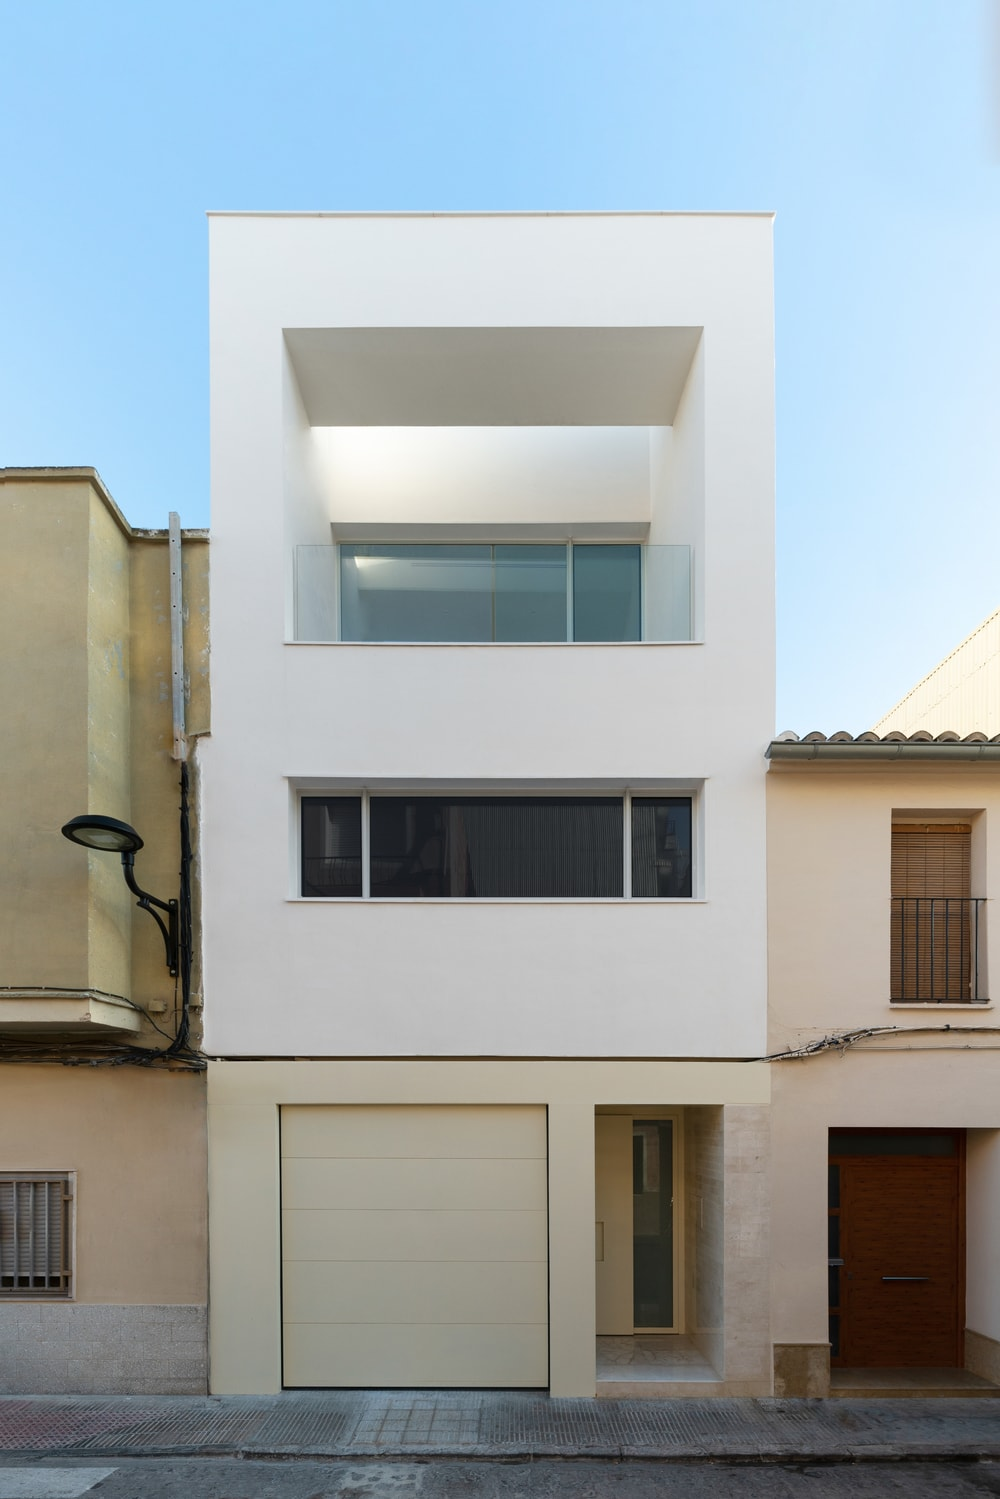 This front look at the house showcases its clean and white exterior walls complemented by the glass walls and balcony.